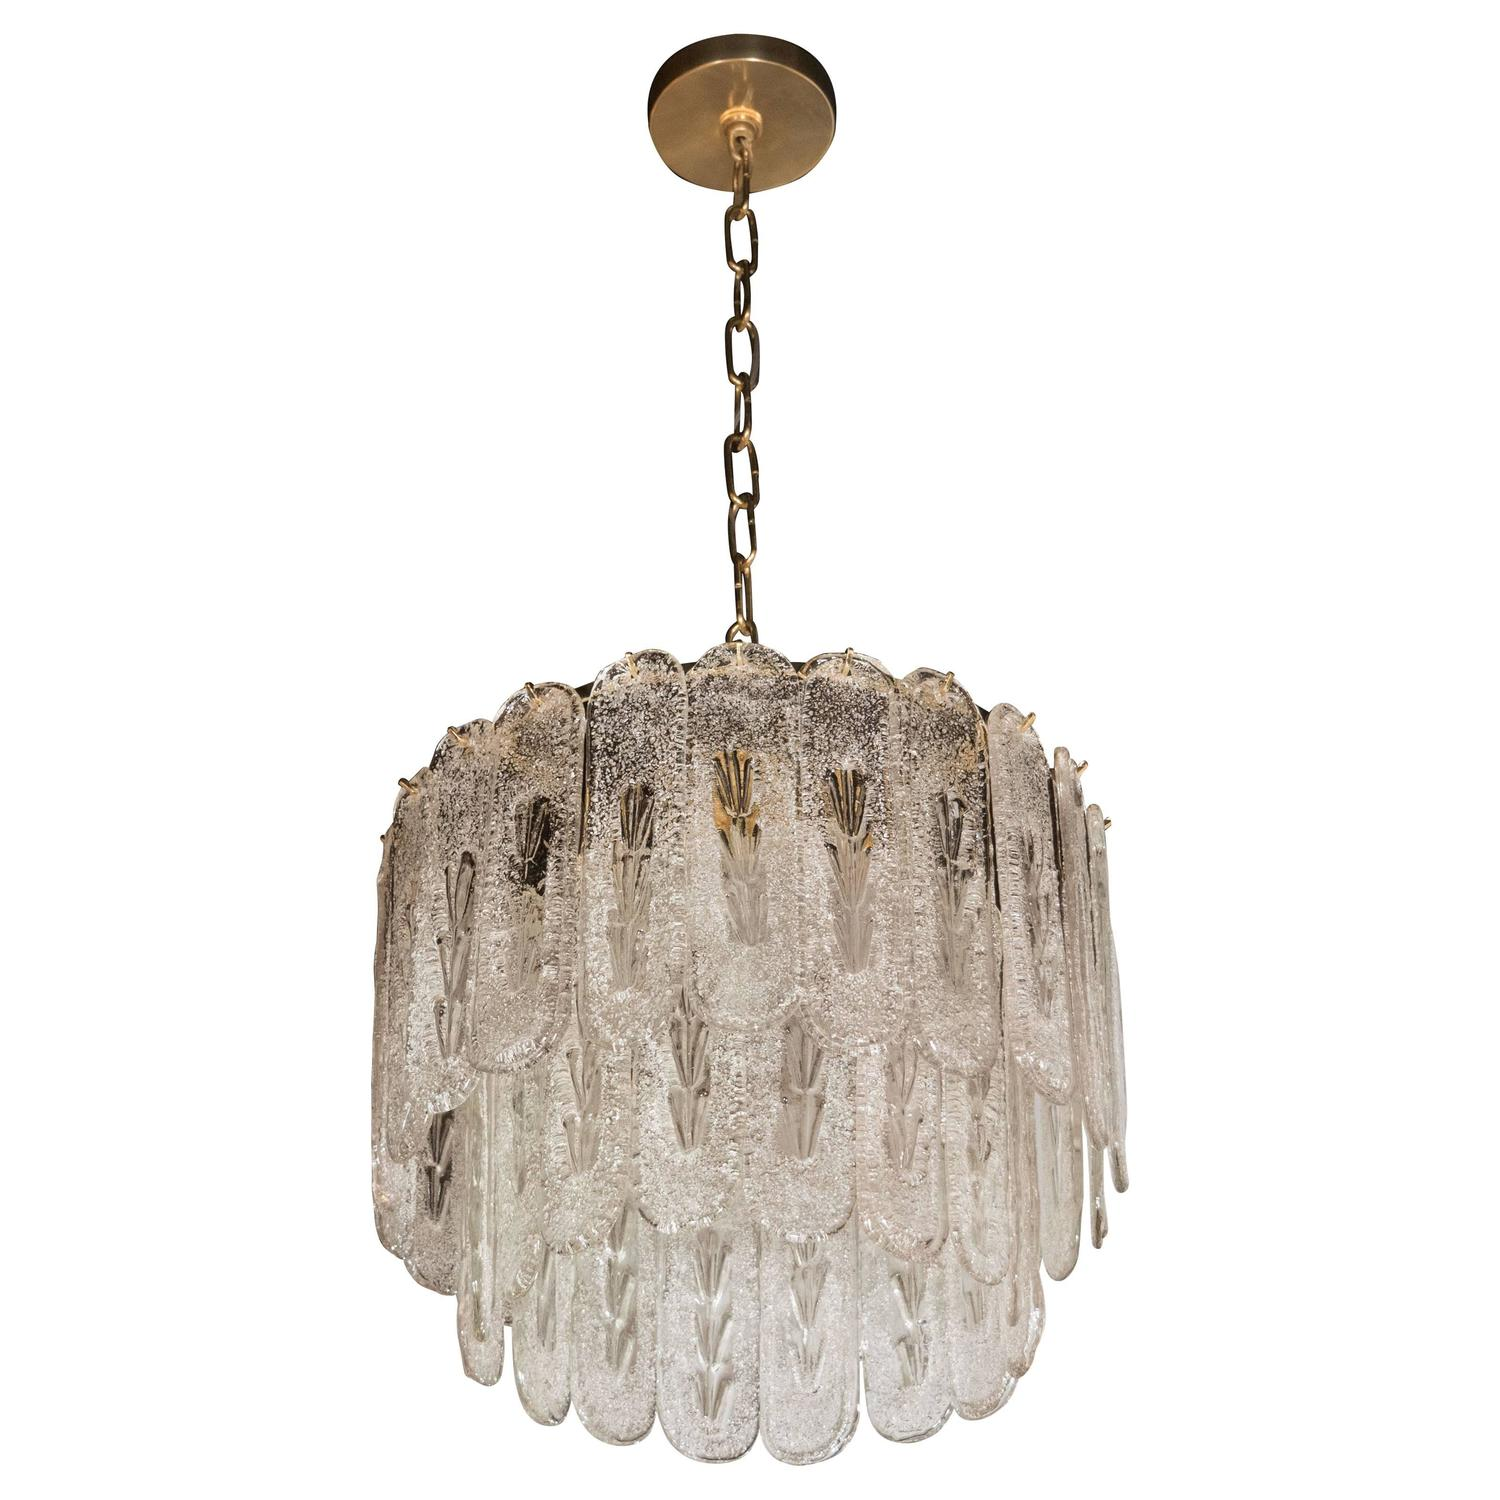 Exquisite and Monumental Modernist Murano Glass Ribbon Chandelier